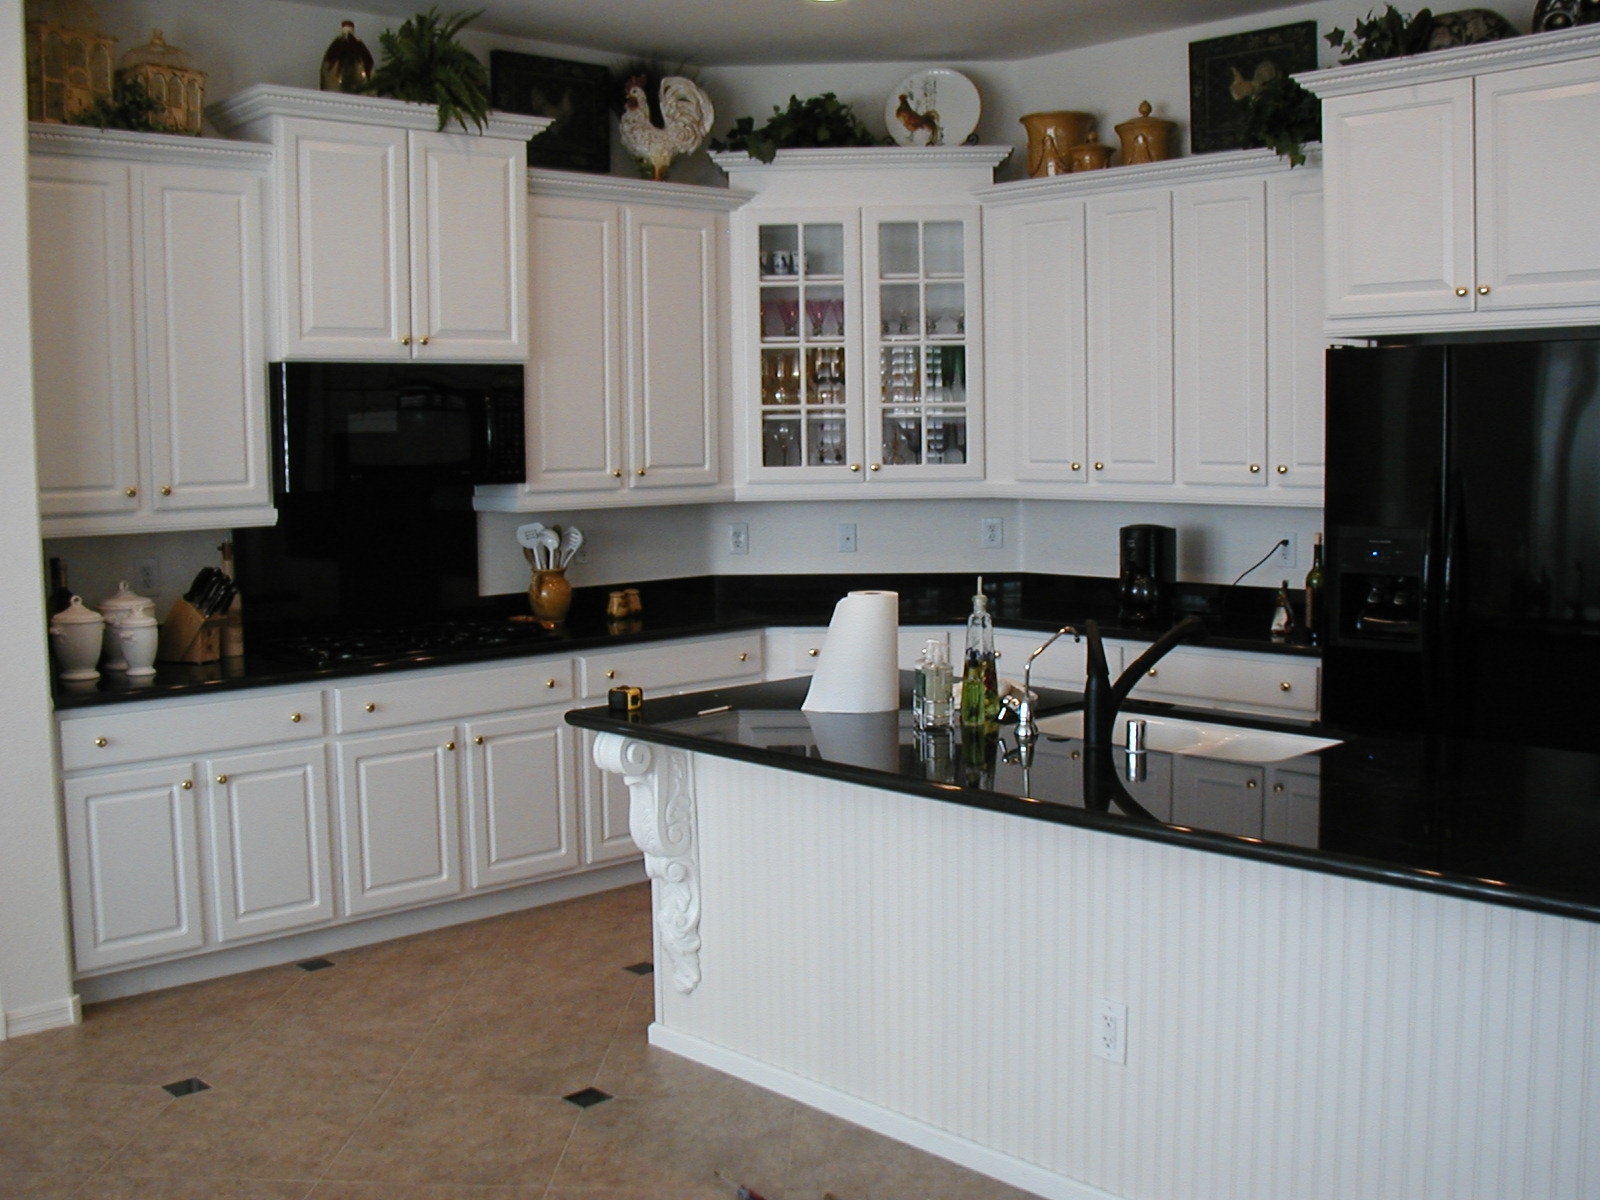 Hmh designs white kitchen cabinets timeless and transcendent for Kitchen cabinets with black appliances